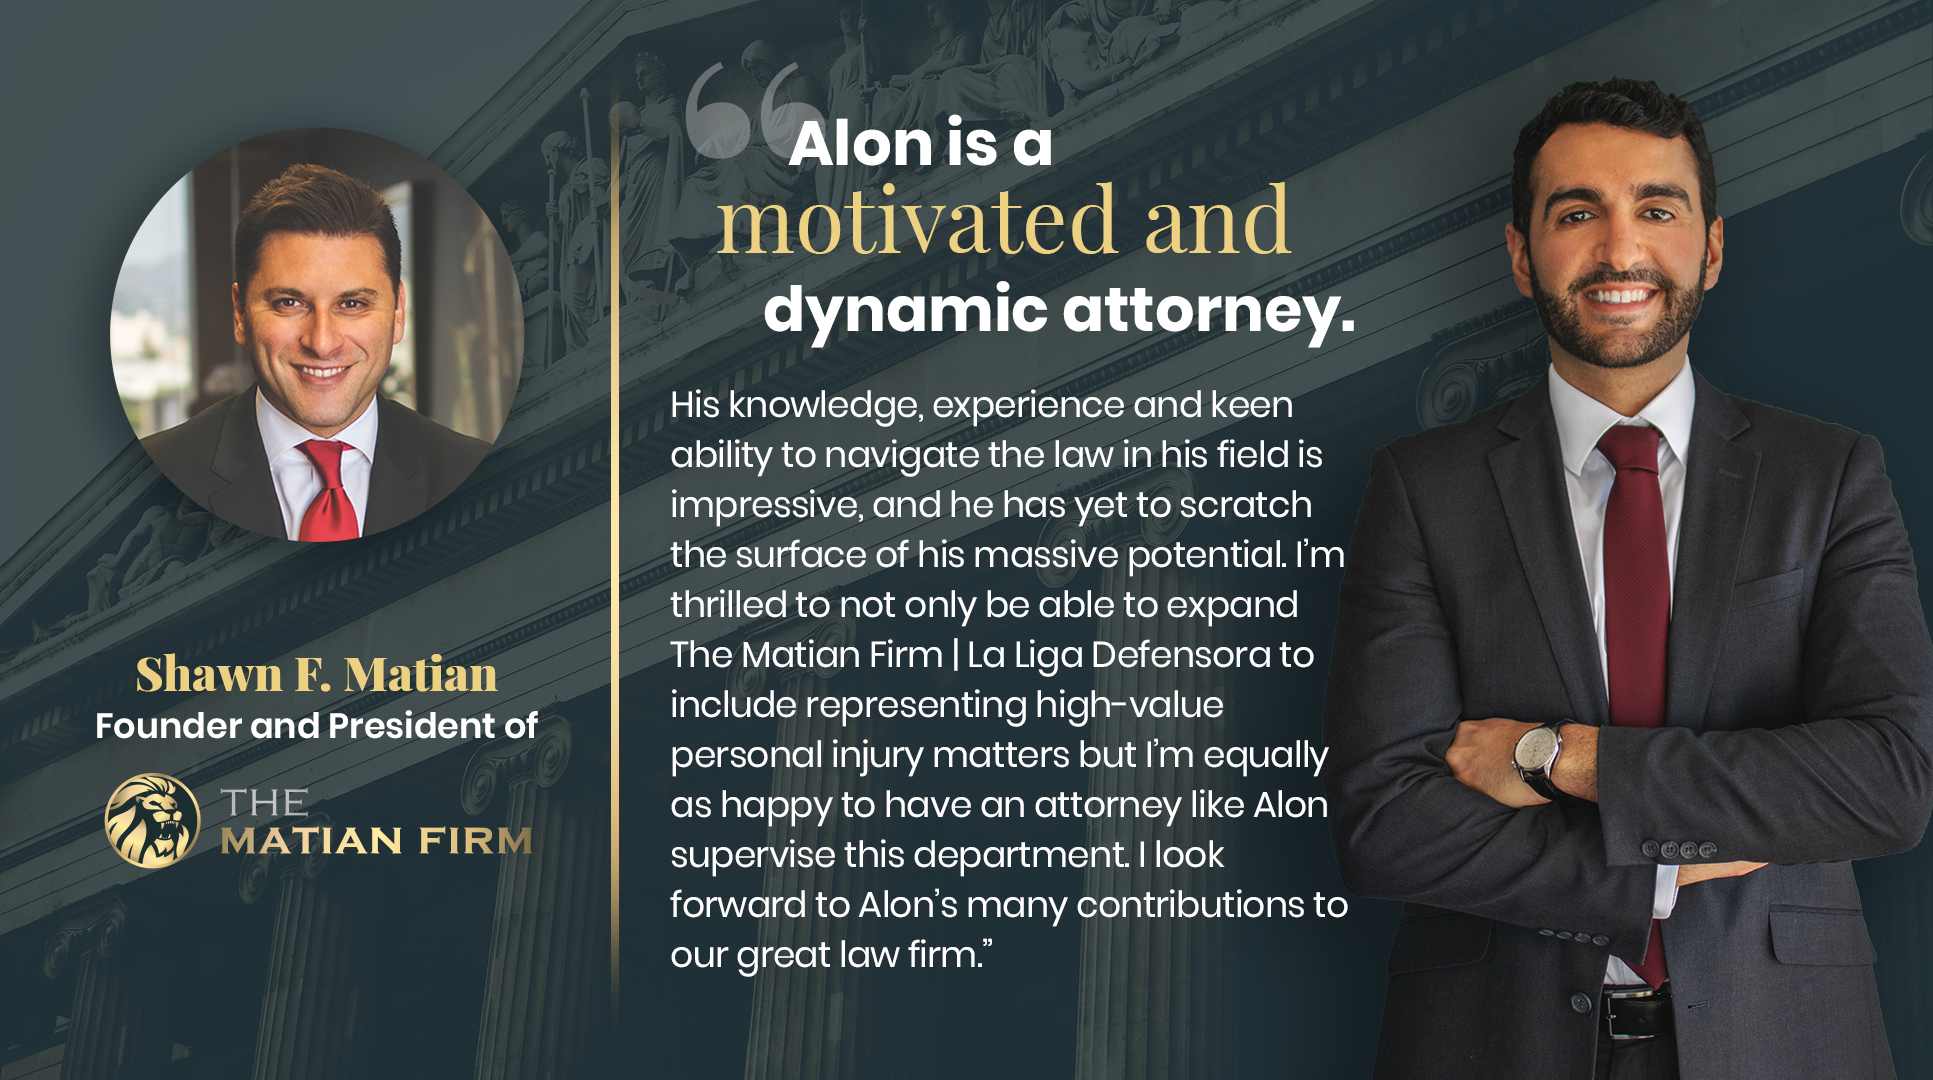 The Matian Firm is proud to announce the appointment of Attorney Alon Aliav